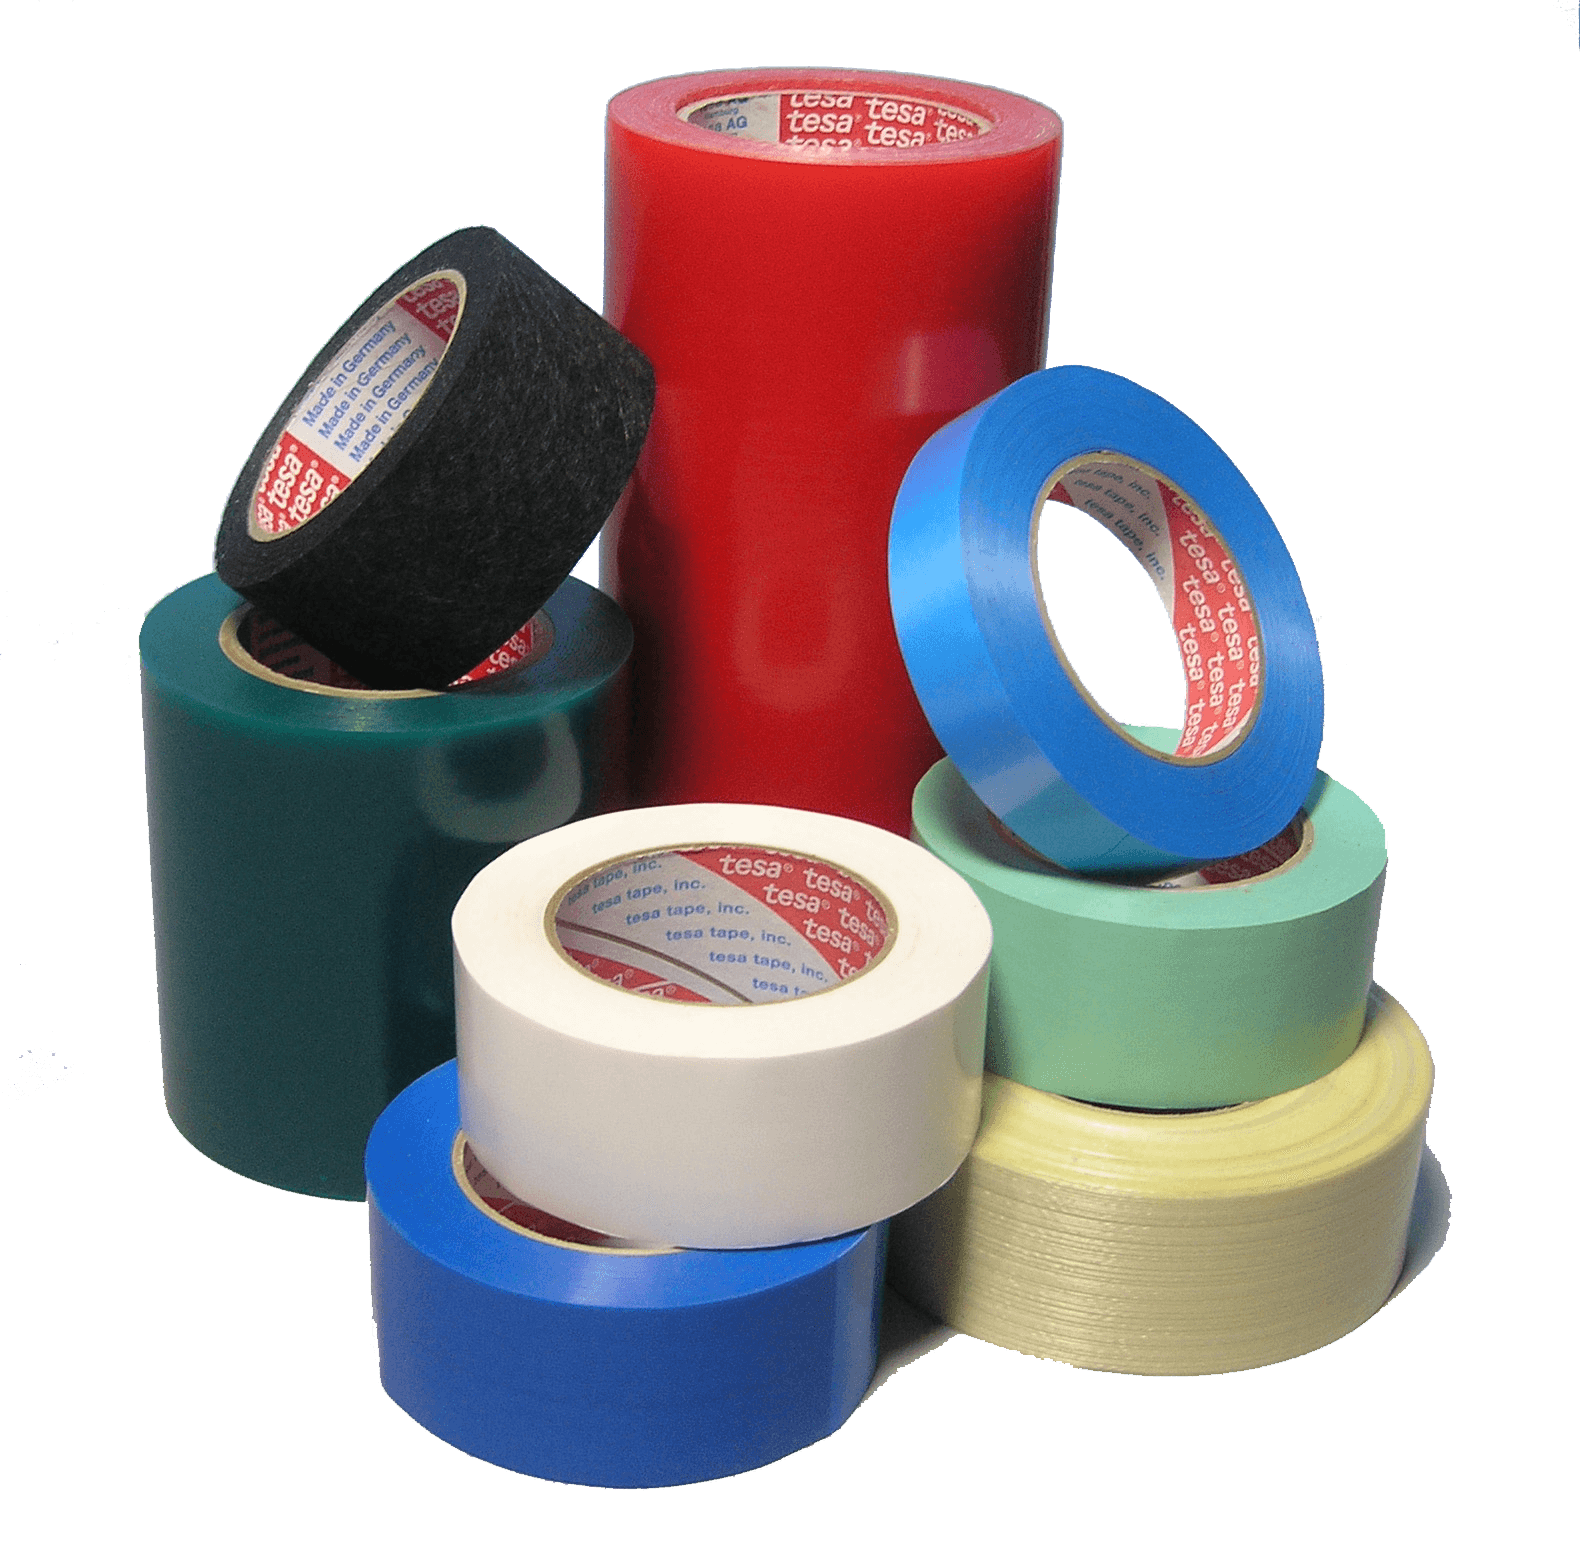 collection of appliance tape grouped on transparent background